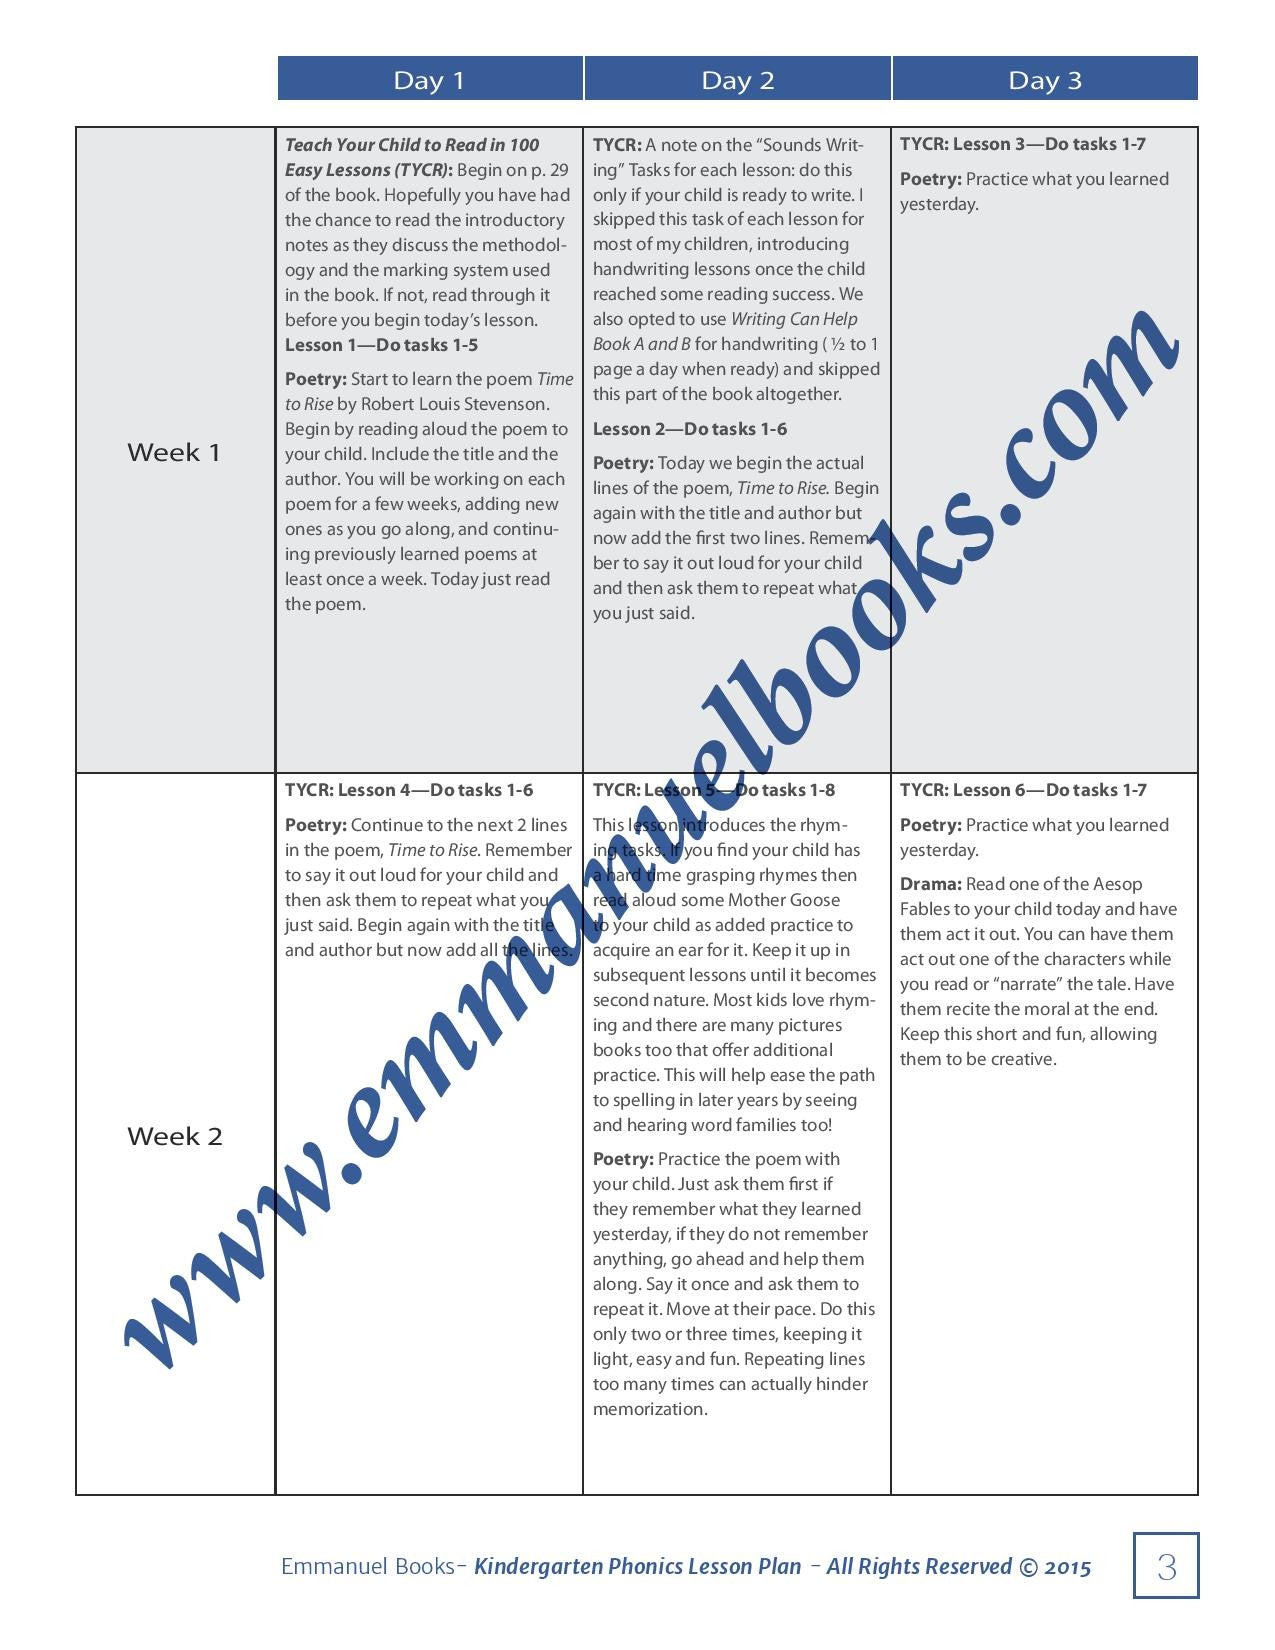 Emmanuel Books Kindergarten Lesson Plan - All Subjects